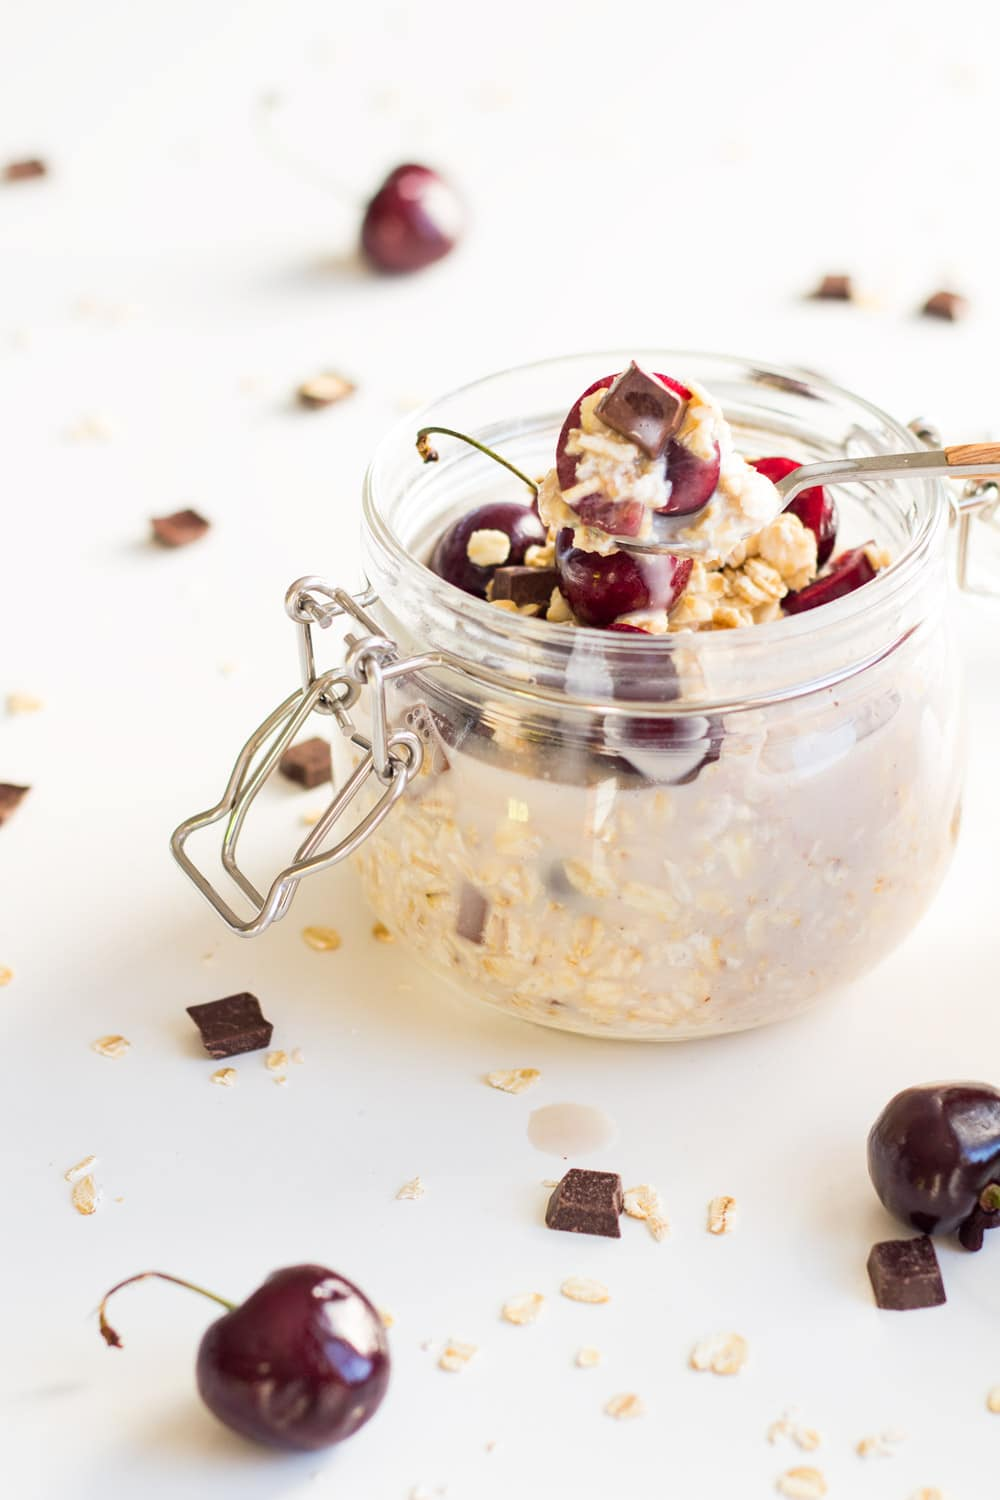 A recipe for healthy and delicious Dark Chocolate Cheery Vegan Overnight Oats. The perfect breakfast prepared in 2 minutes!